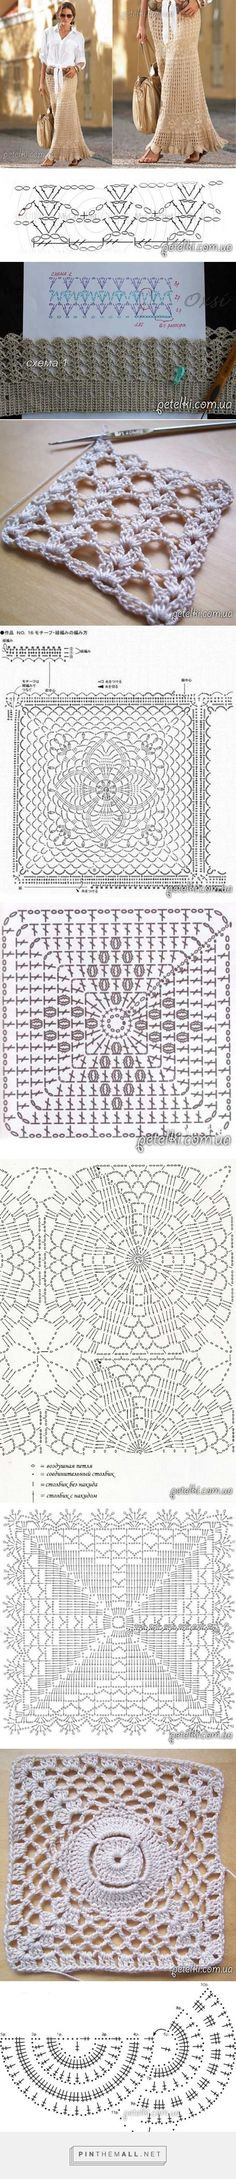 Crochet Skirt Diagram Charts Knitting 32 Ideas For 2019 See other ideas and pictures from the category menu…. Faneks healthy and active life ideas Crochet Diagram, Crochet Chart, Crochet Motif, Diy Crochet, Crochet Stitches, Crochet Patterns, Knitting Patterns, Gilet Crochet, Crochet Blouse